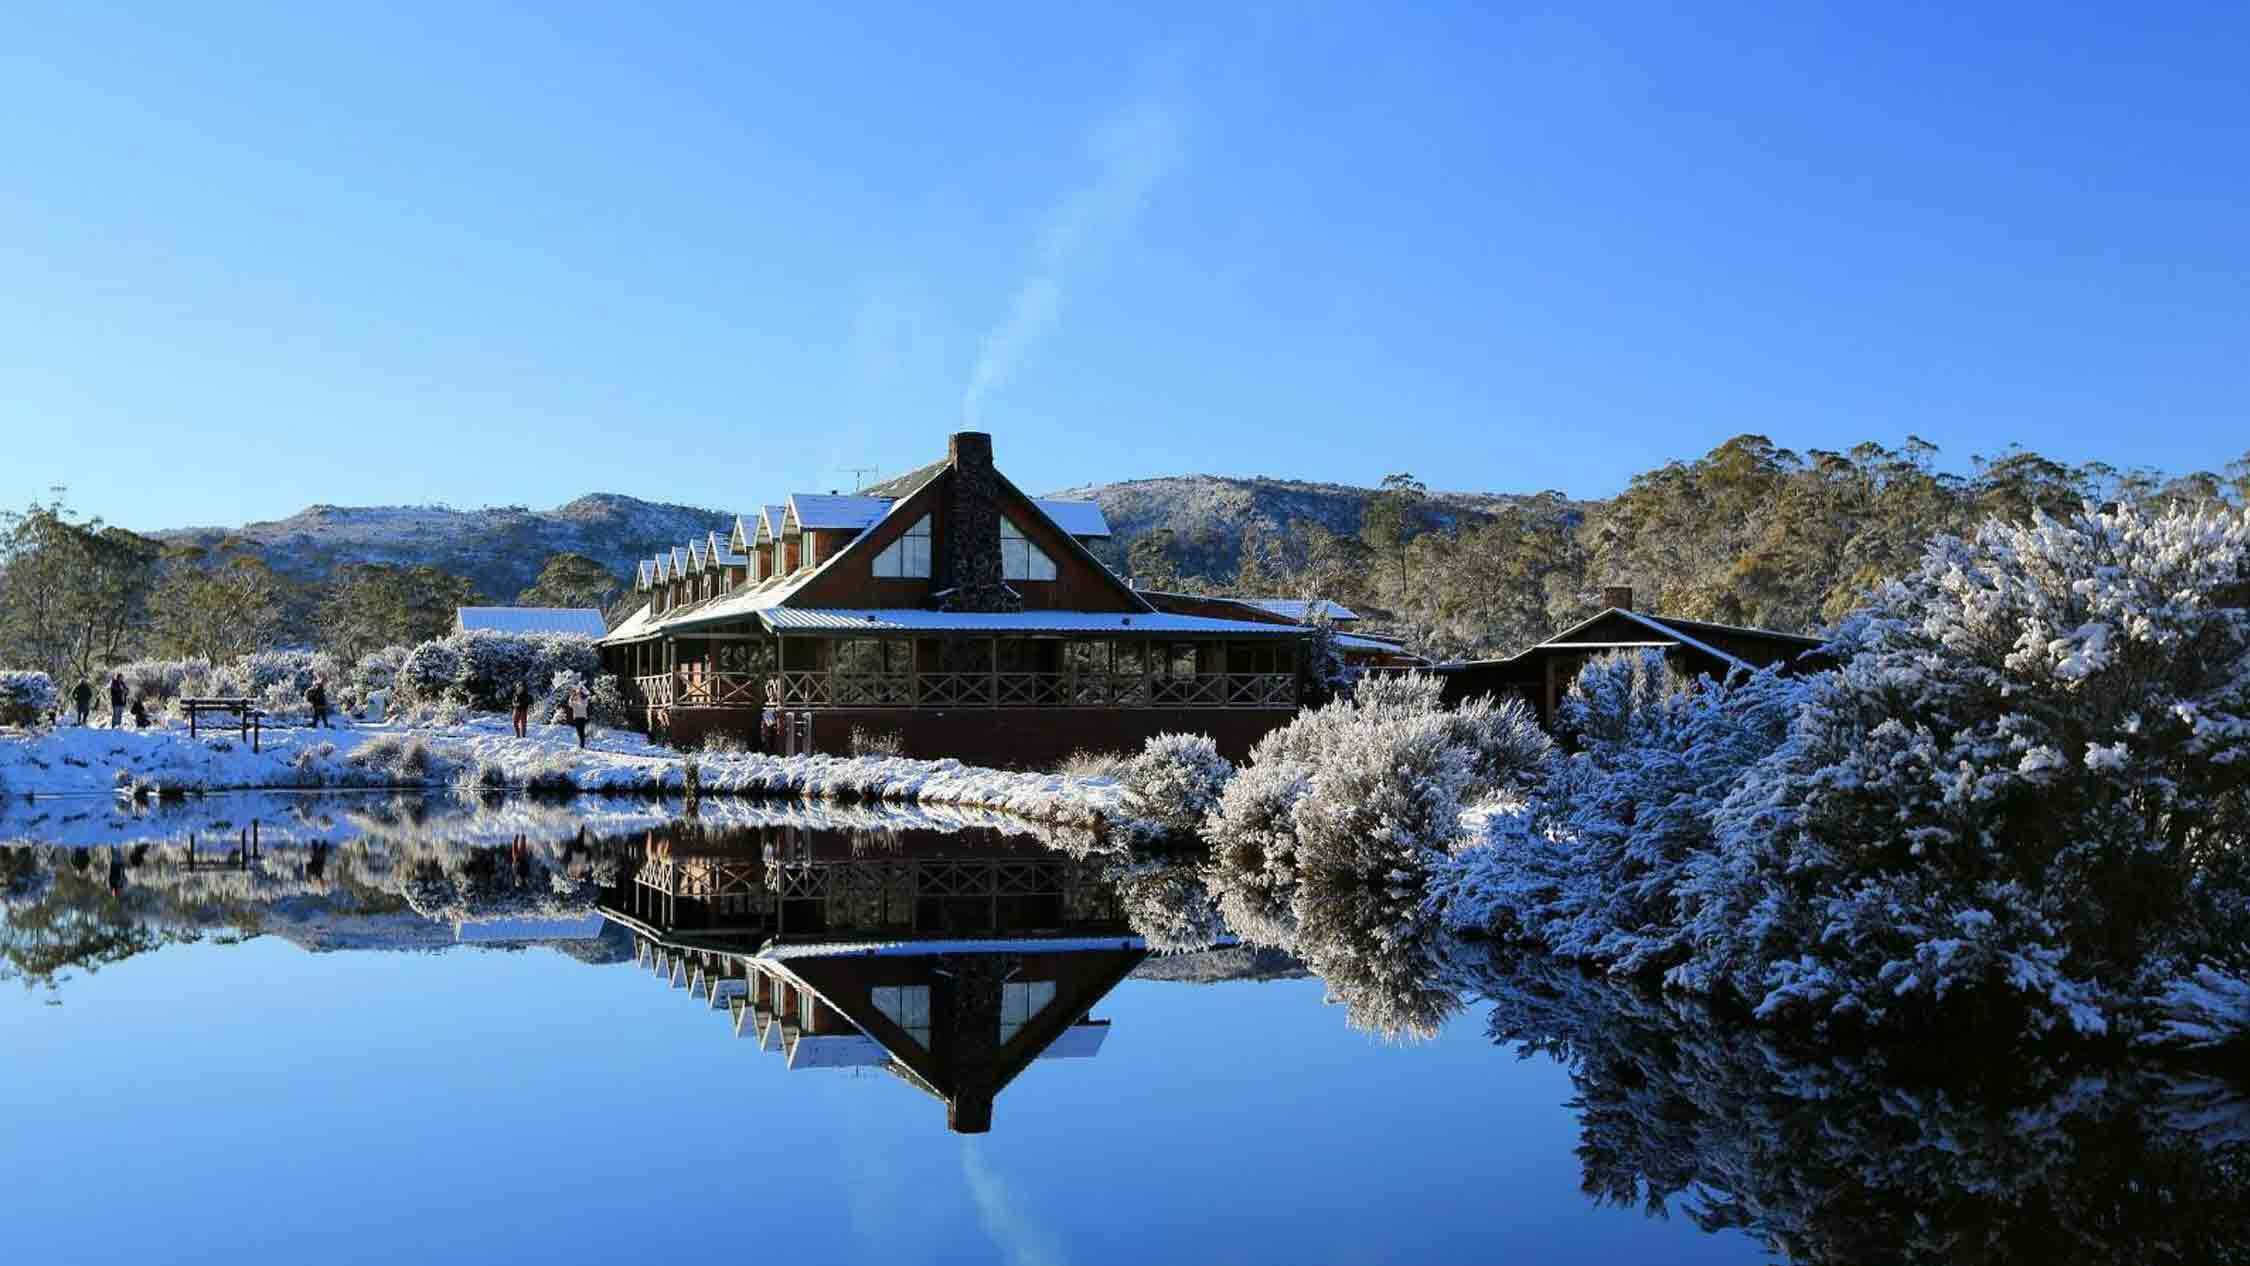 Four winter getaways that will help you afford your spring getaway